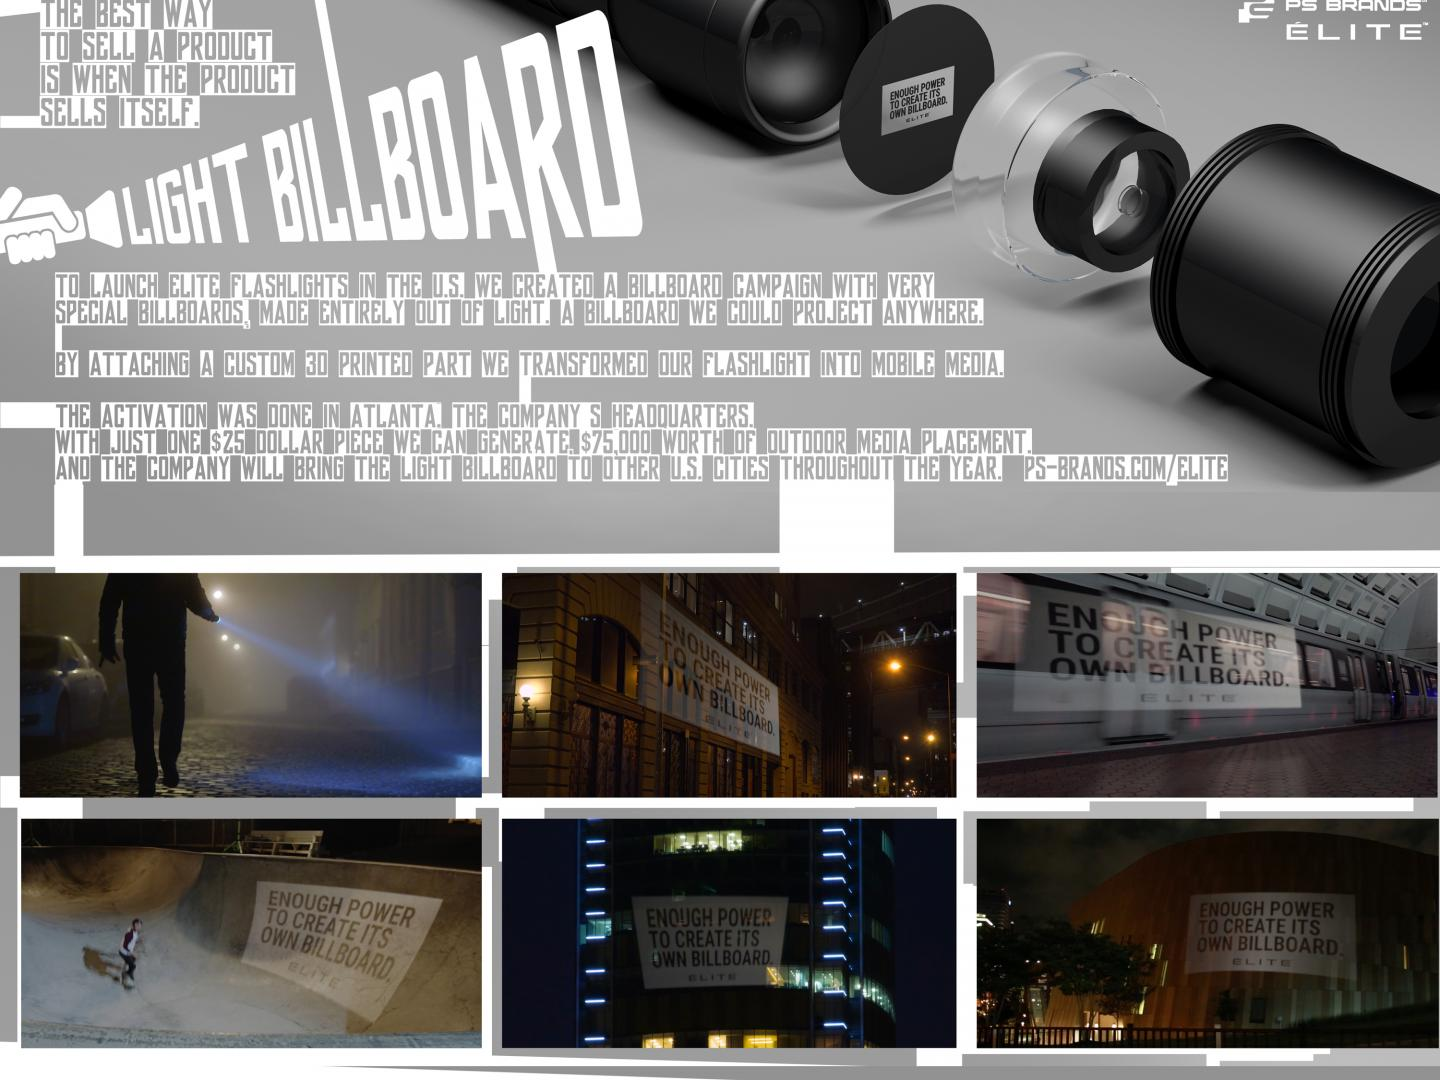 Flashlight Billboard Thumbnail